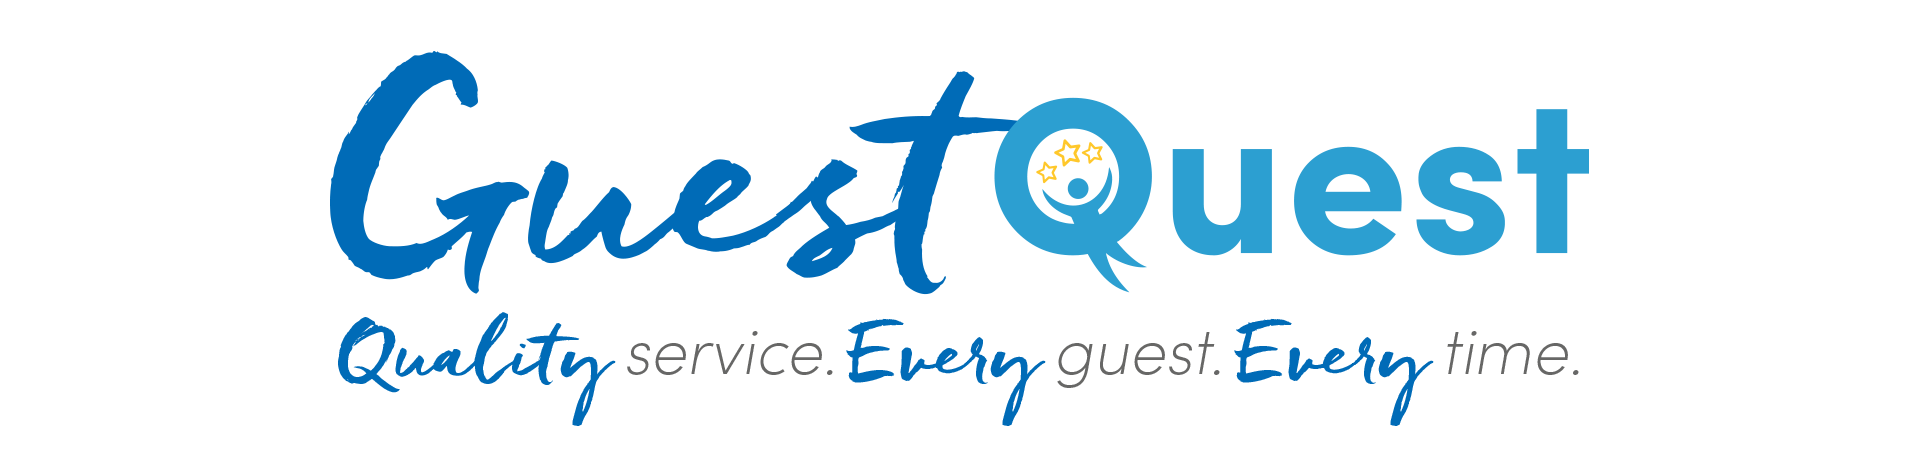 Guest Quest - Quality Service. Every Guest. Every Time.